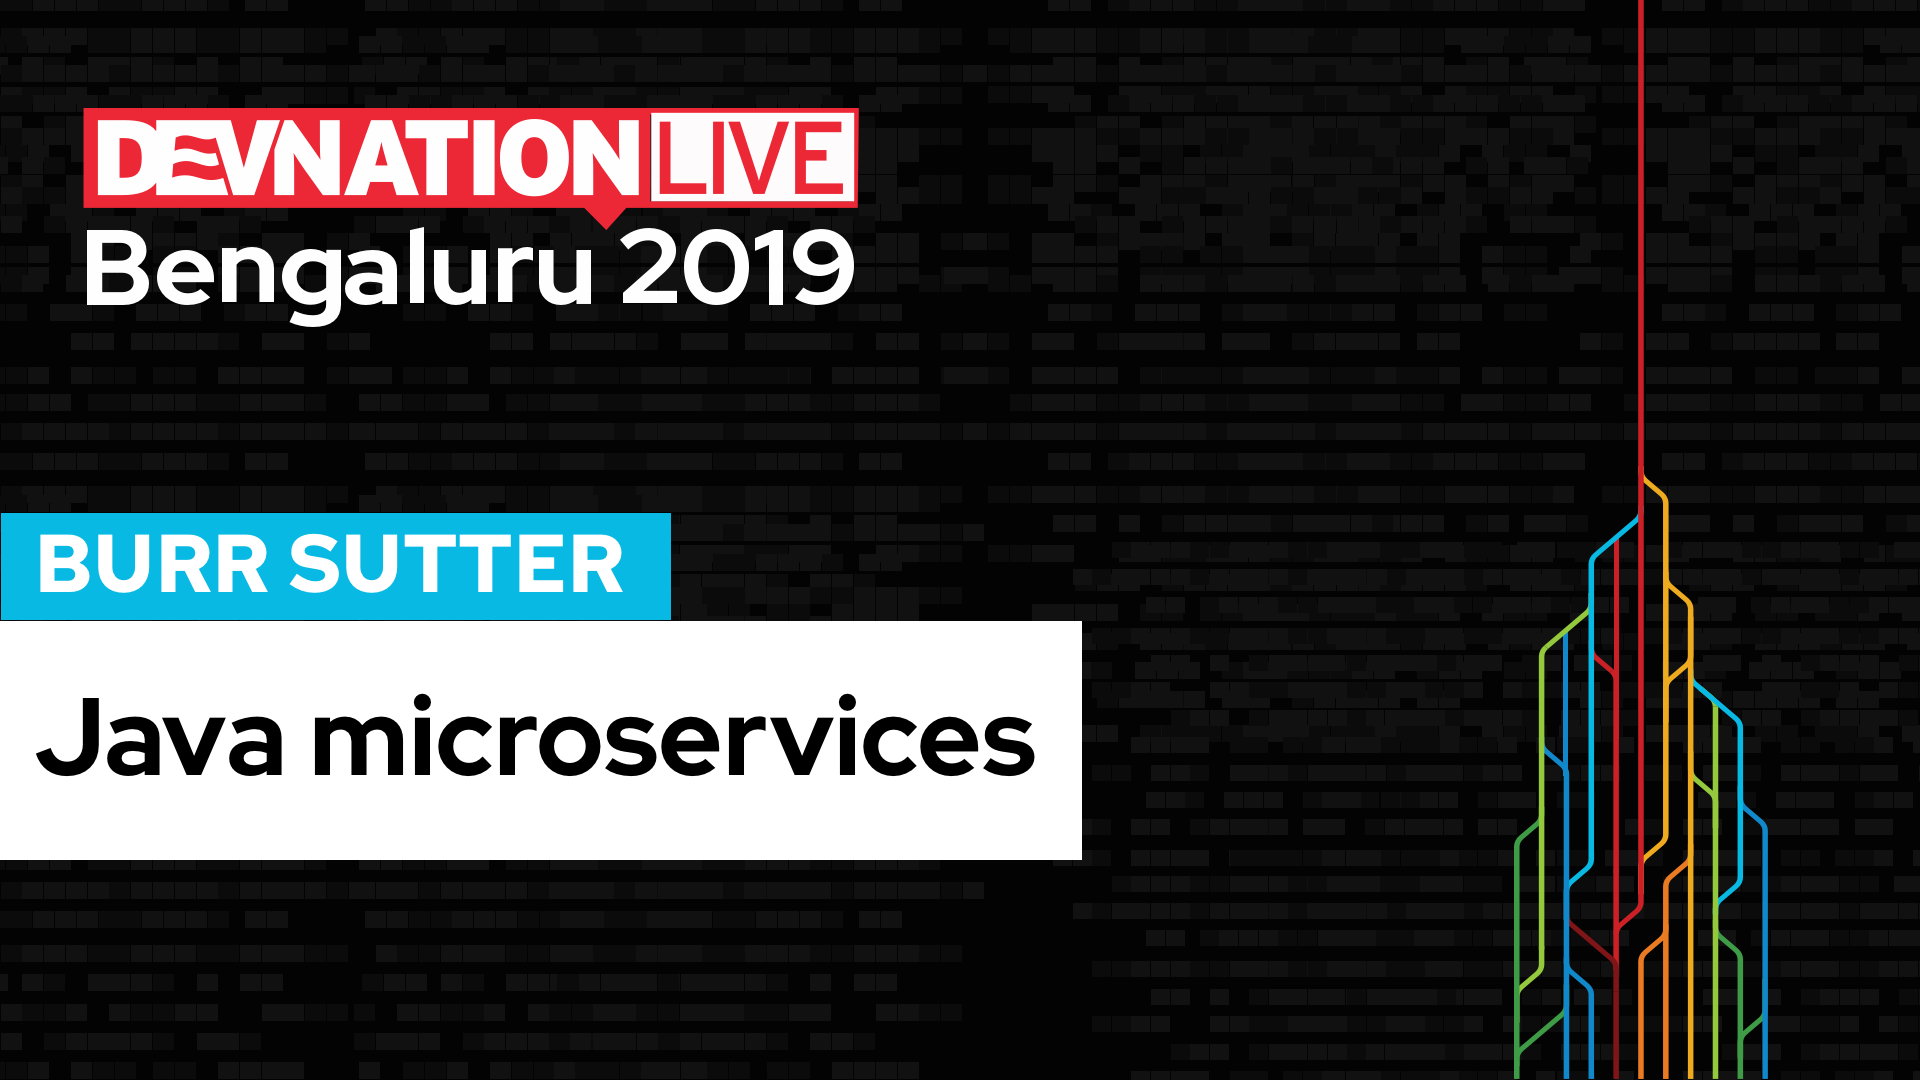 DevNation Live Bengaluru: Java microservices and how to become cloud-native